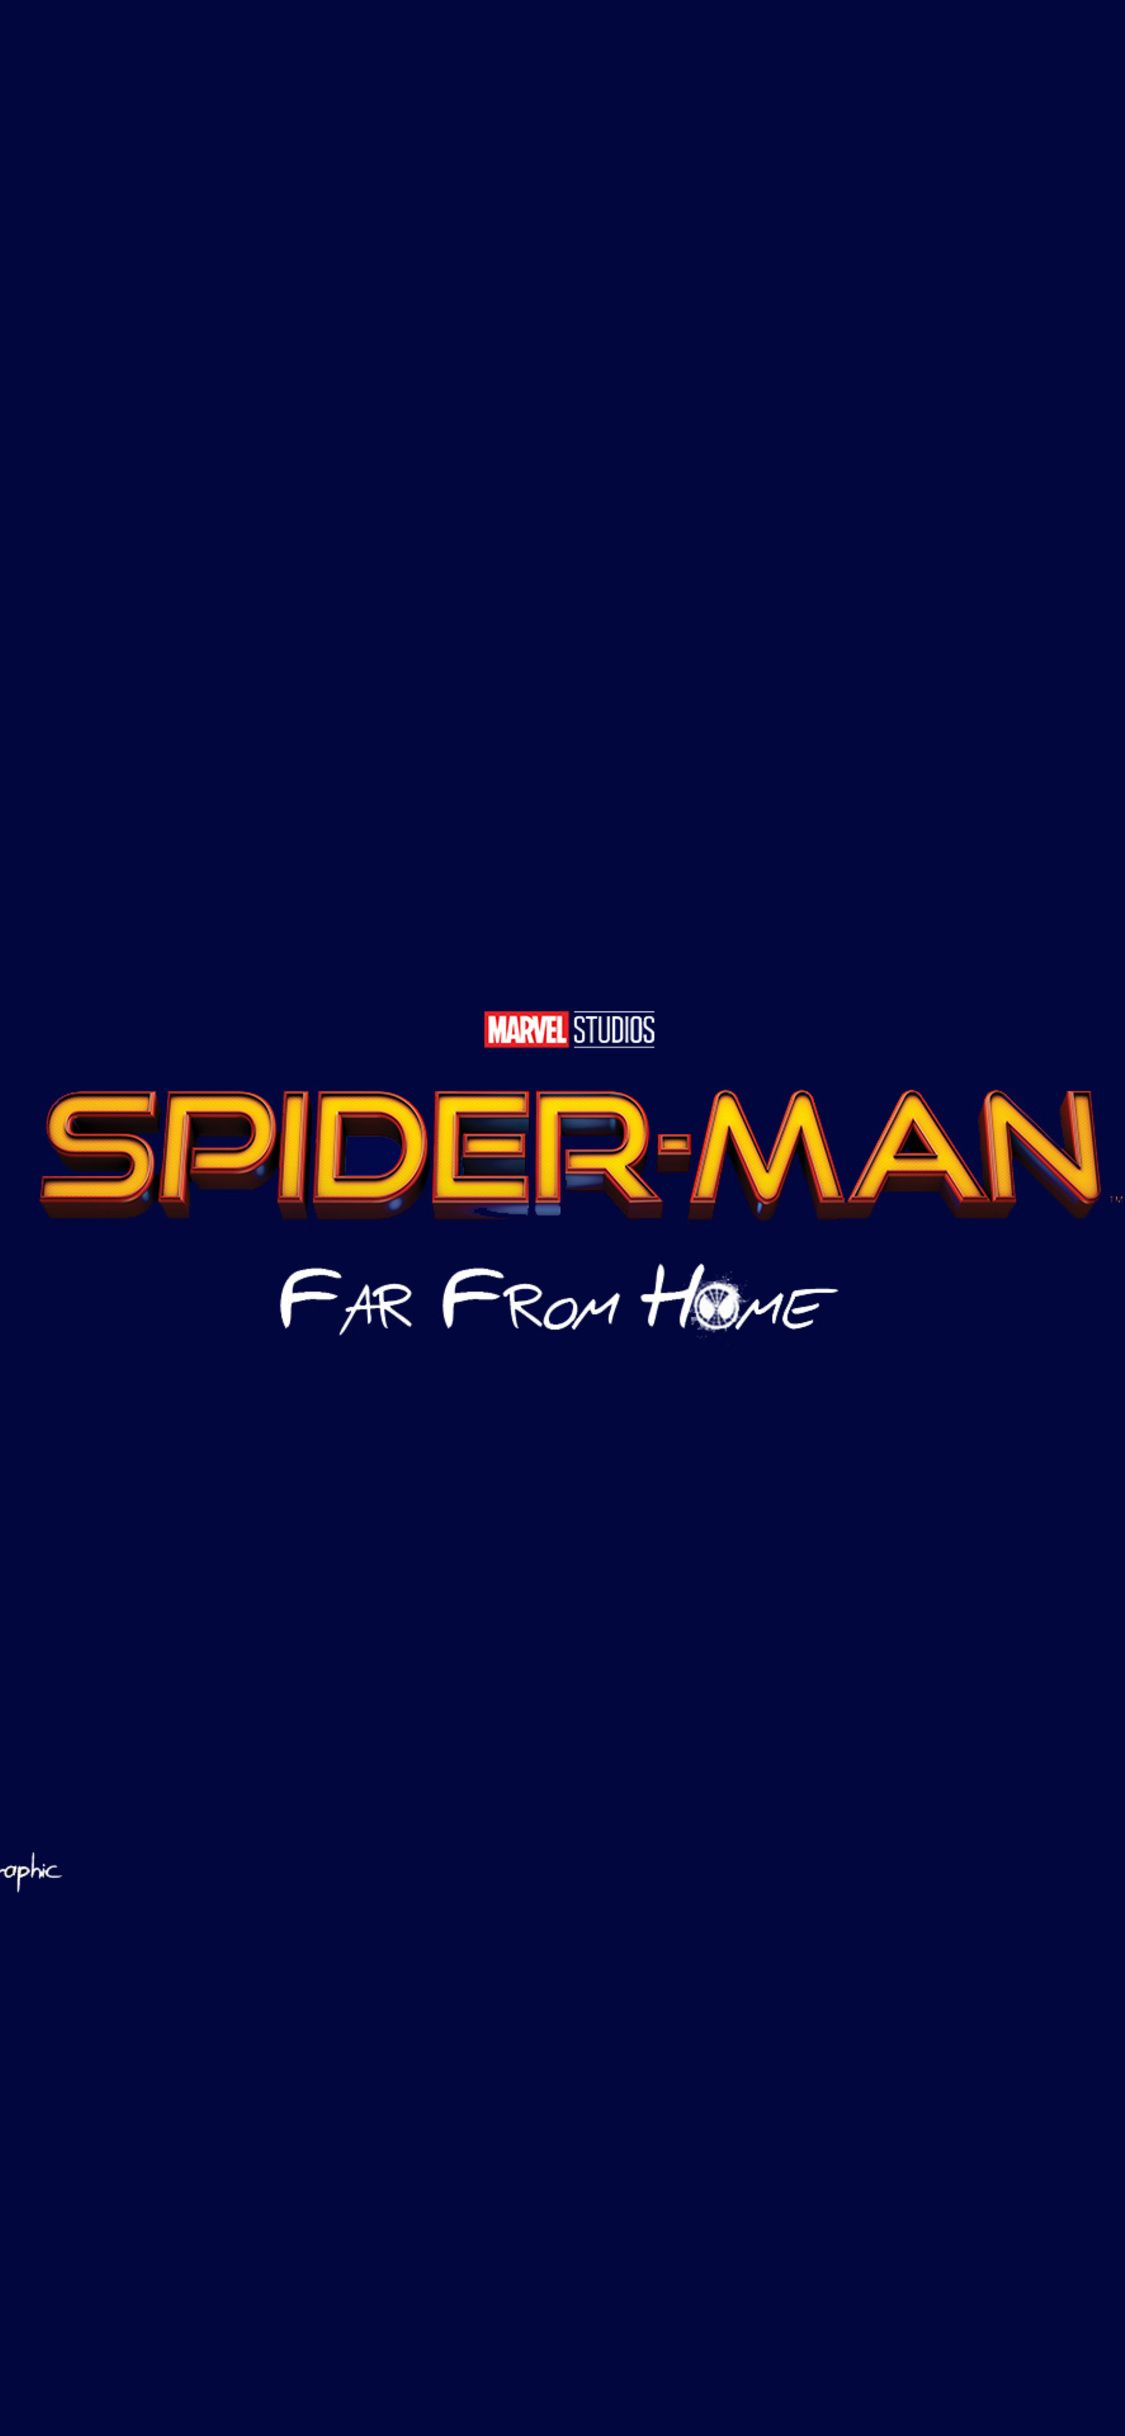 1125x2436 Spiderman Far From Home Movie Logo Iphone Xs